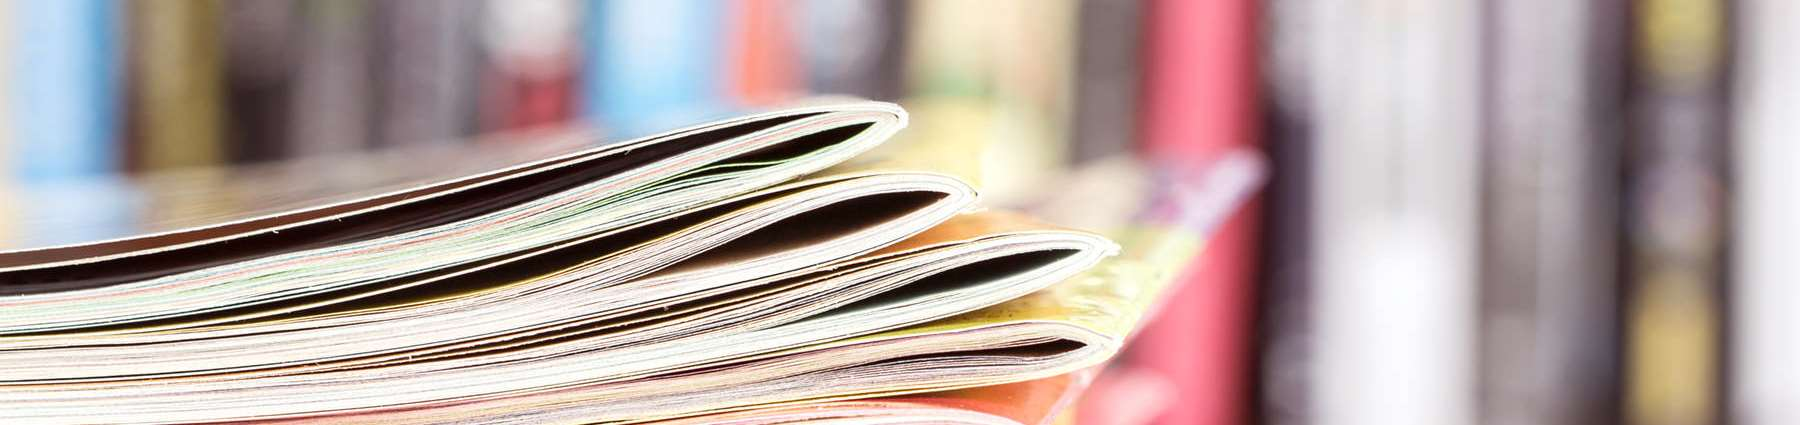 close up of stack of magazines